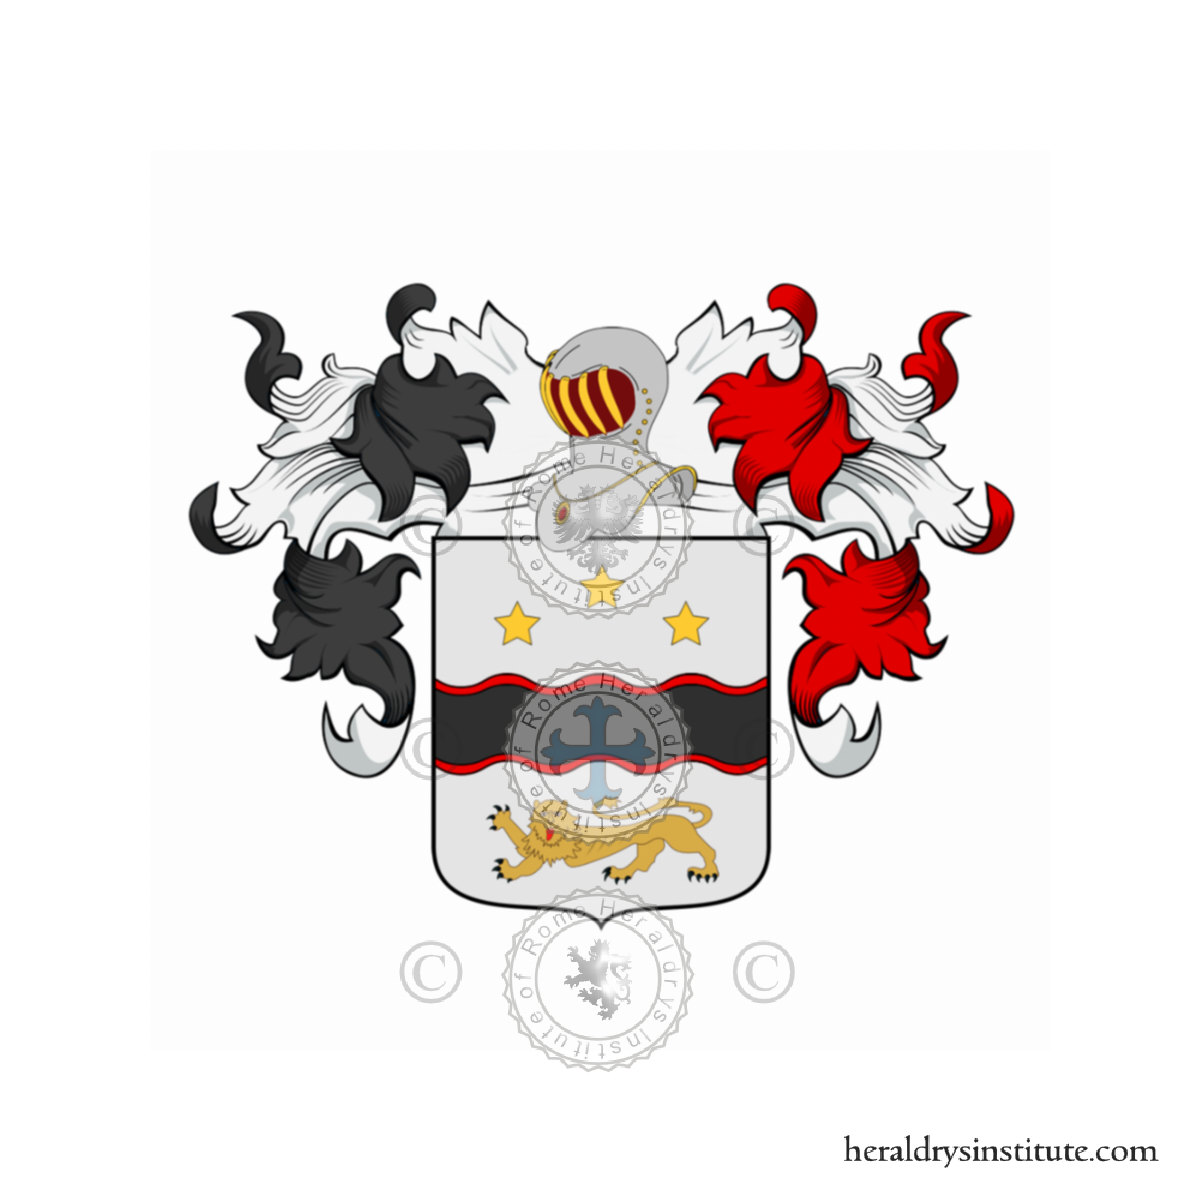 coat of arms essay The term coat of arms is derived from the surcoat that was worn over a knight's armor to keep off the rays of sun a surcoat was a waist-coat like garment on which the heraldic design was depicted.